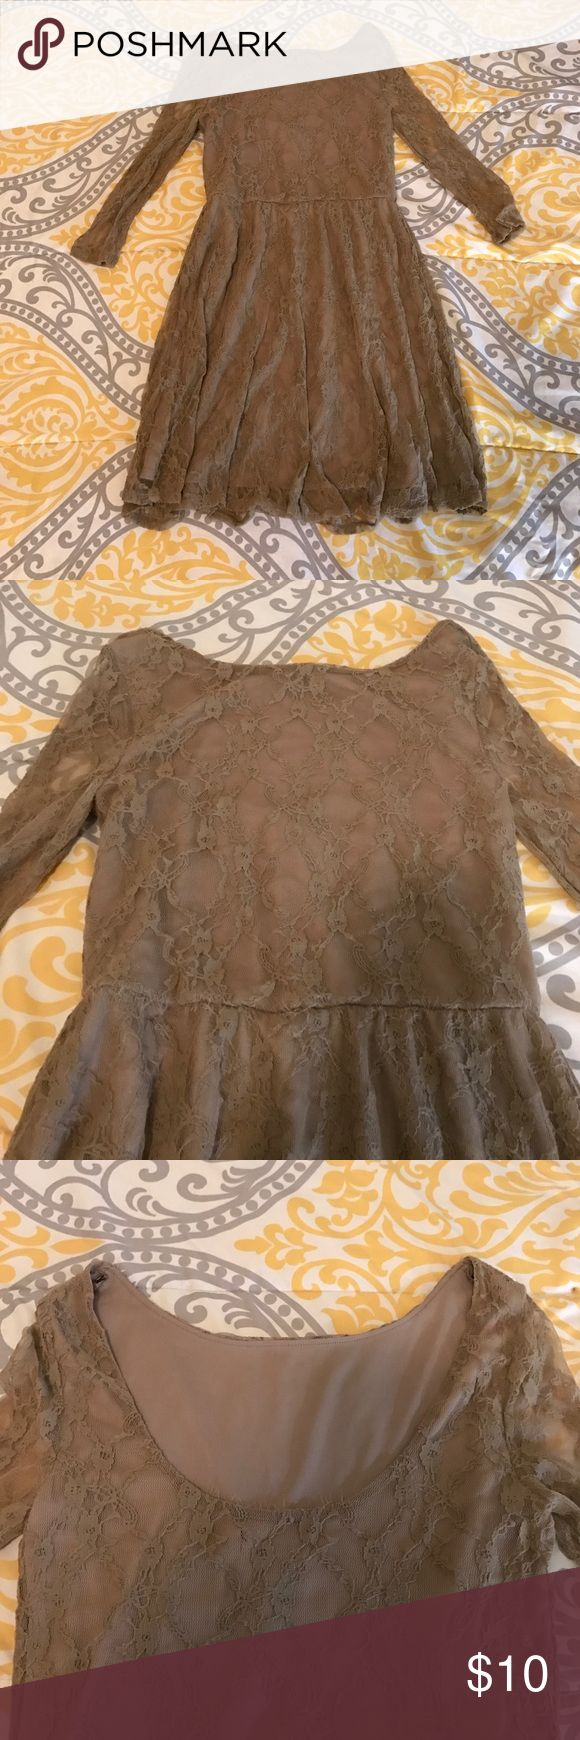 Light brown lace dress Stylish light brown lace dress. A little frayed. Good condition. Smoke & pet free home! Negotiable price, so make an offer! Love Reign Dresses Midi